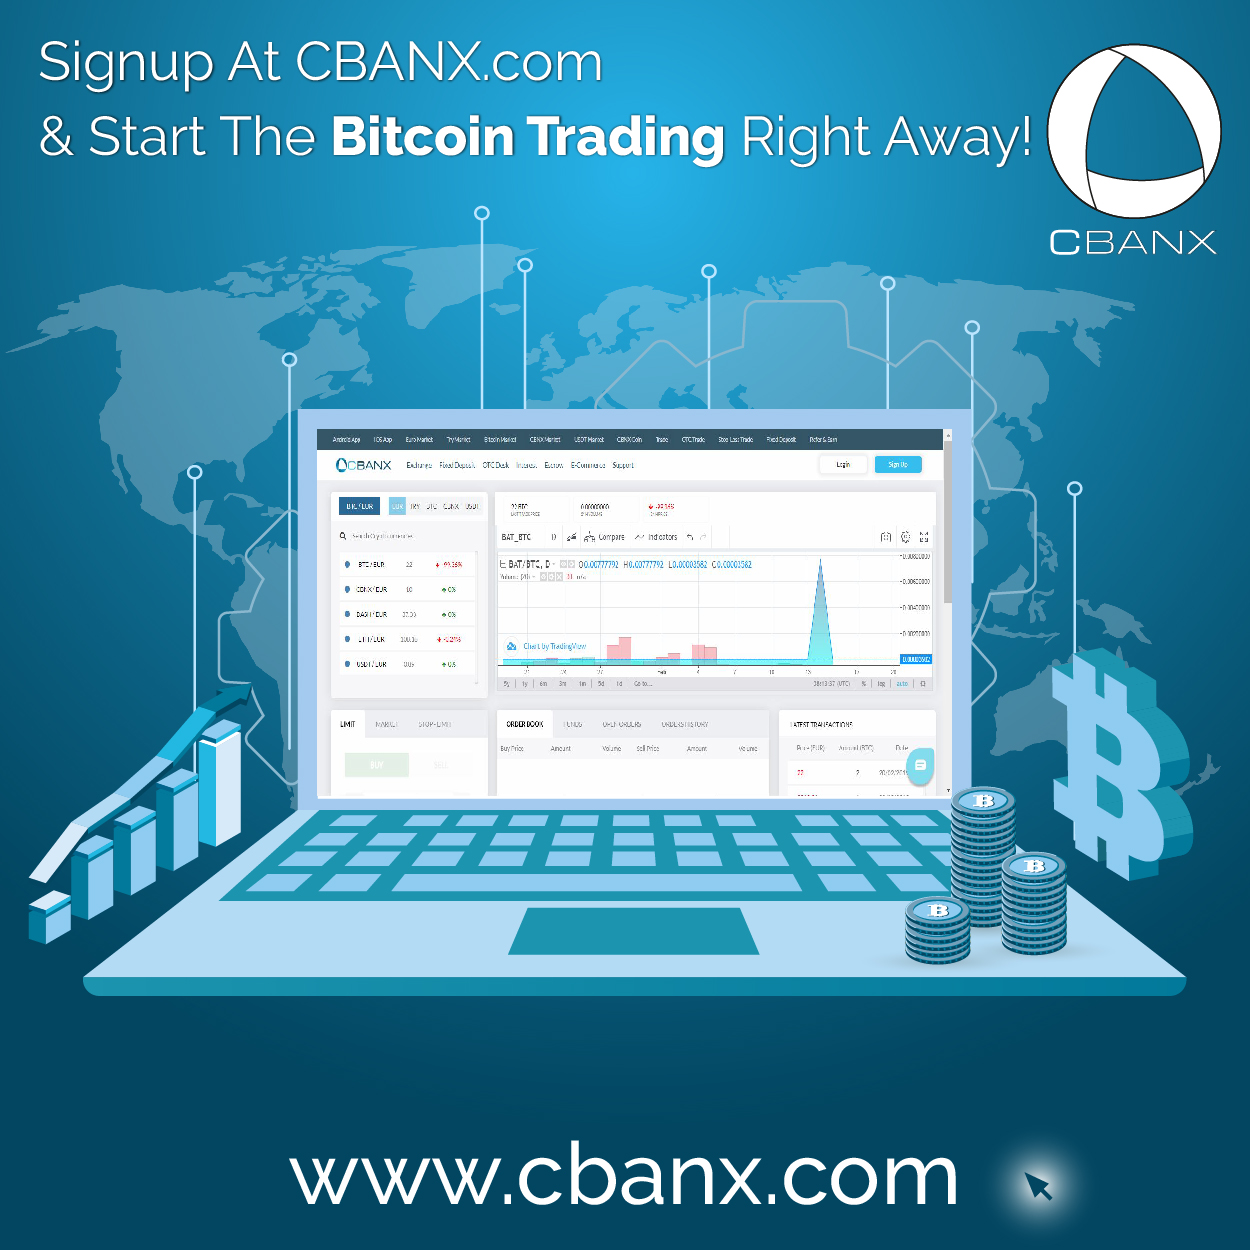 Signup At CBANX.com & Start The Bitcoin Trading Right Away!